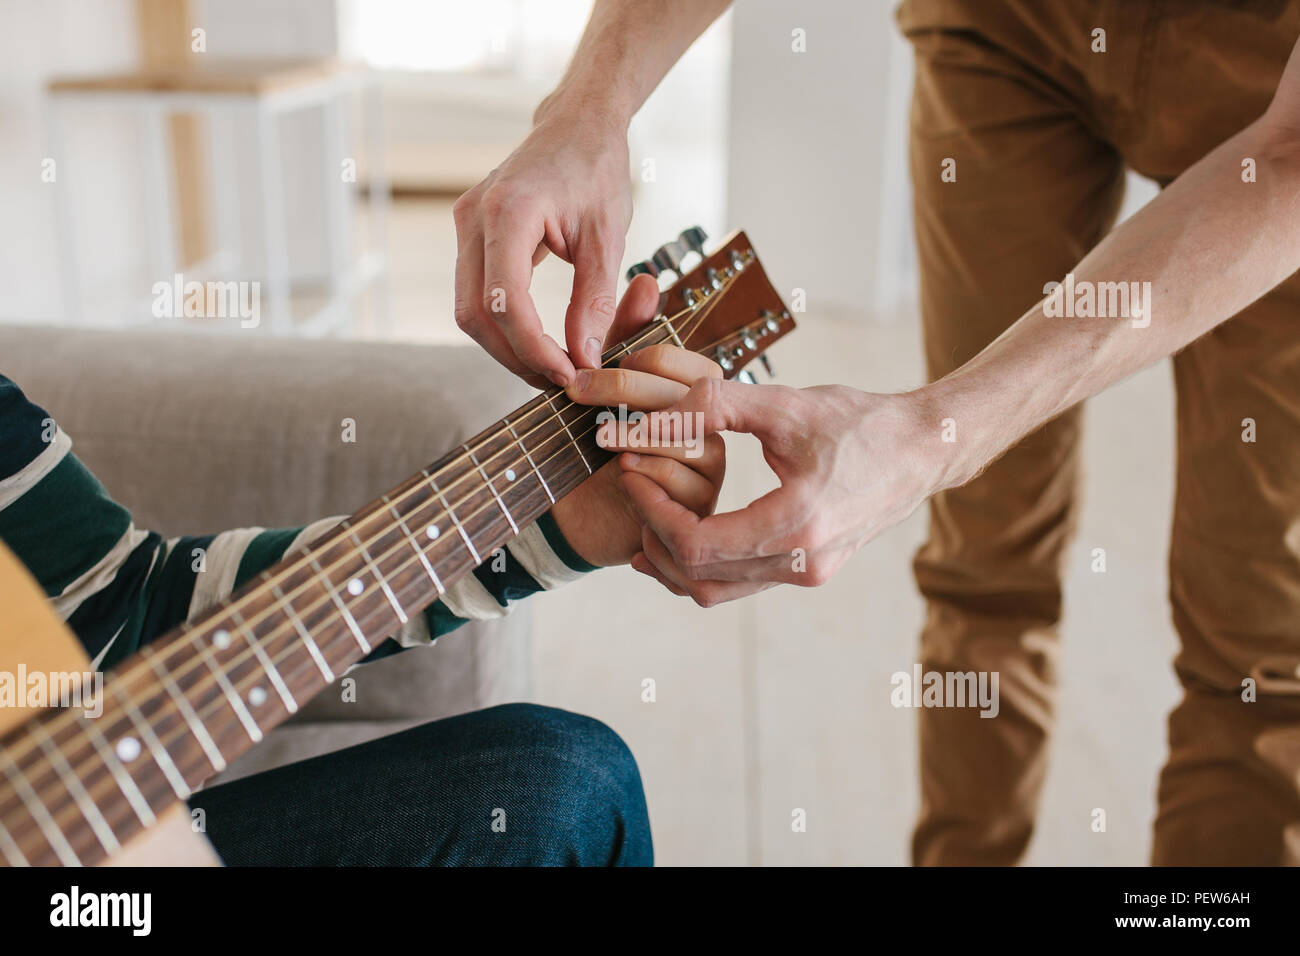 Learning to play the guitar. Music education and extracurricular lessons. - Stock Image